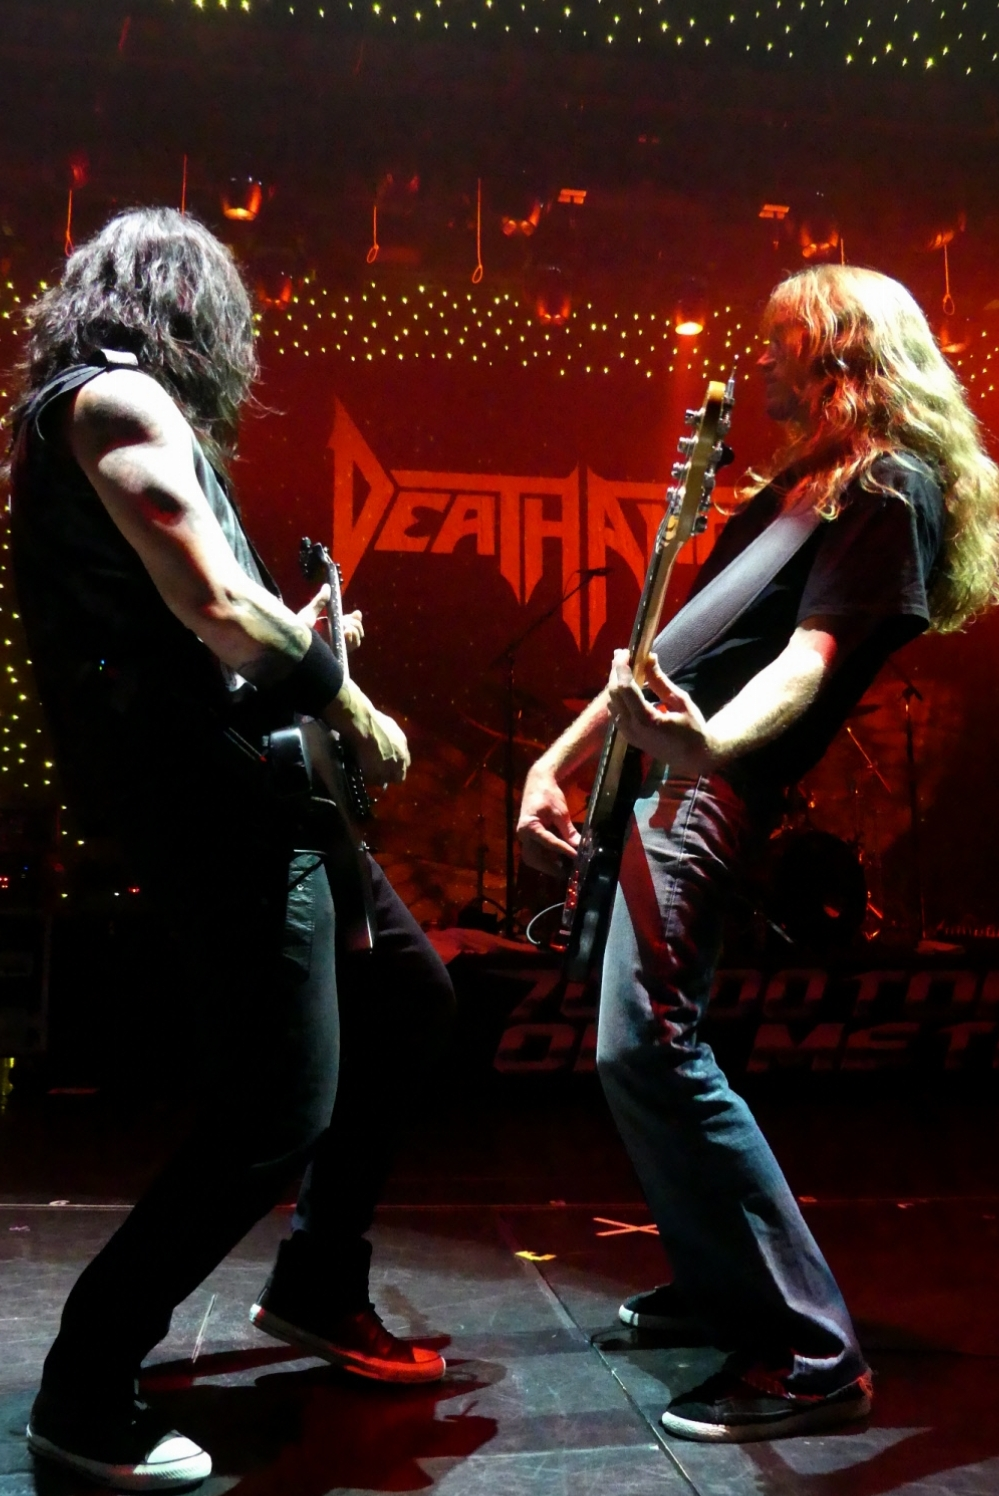 DEATH-ANGEL-70000-tons-of-metal-2017-vampster_7